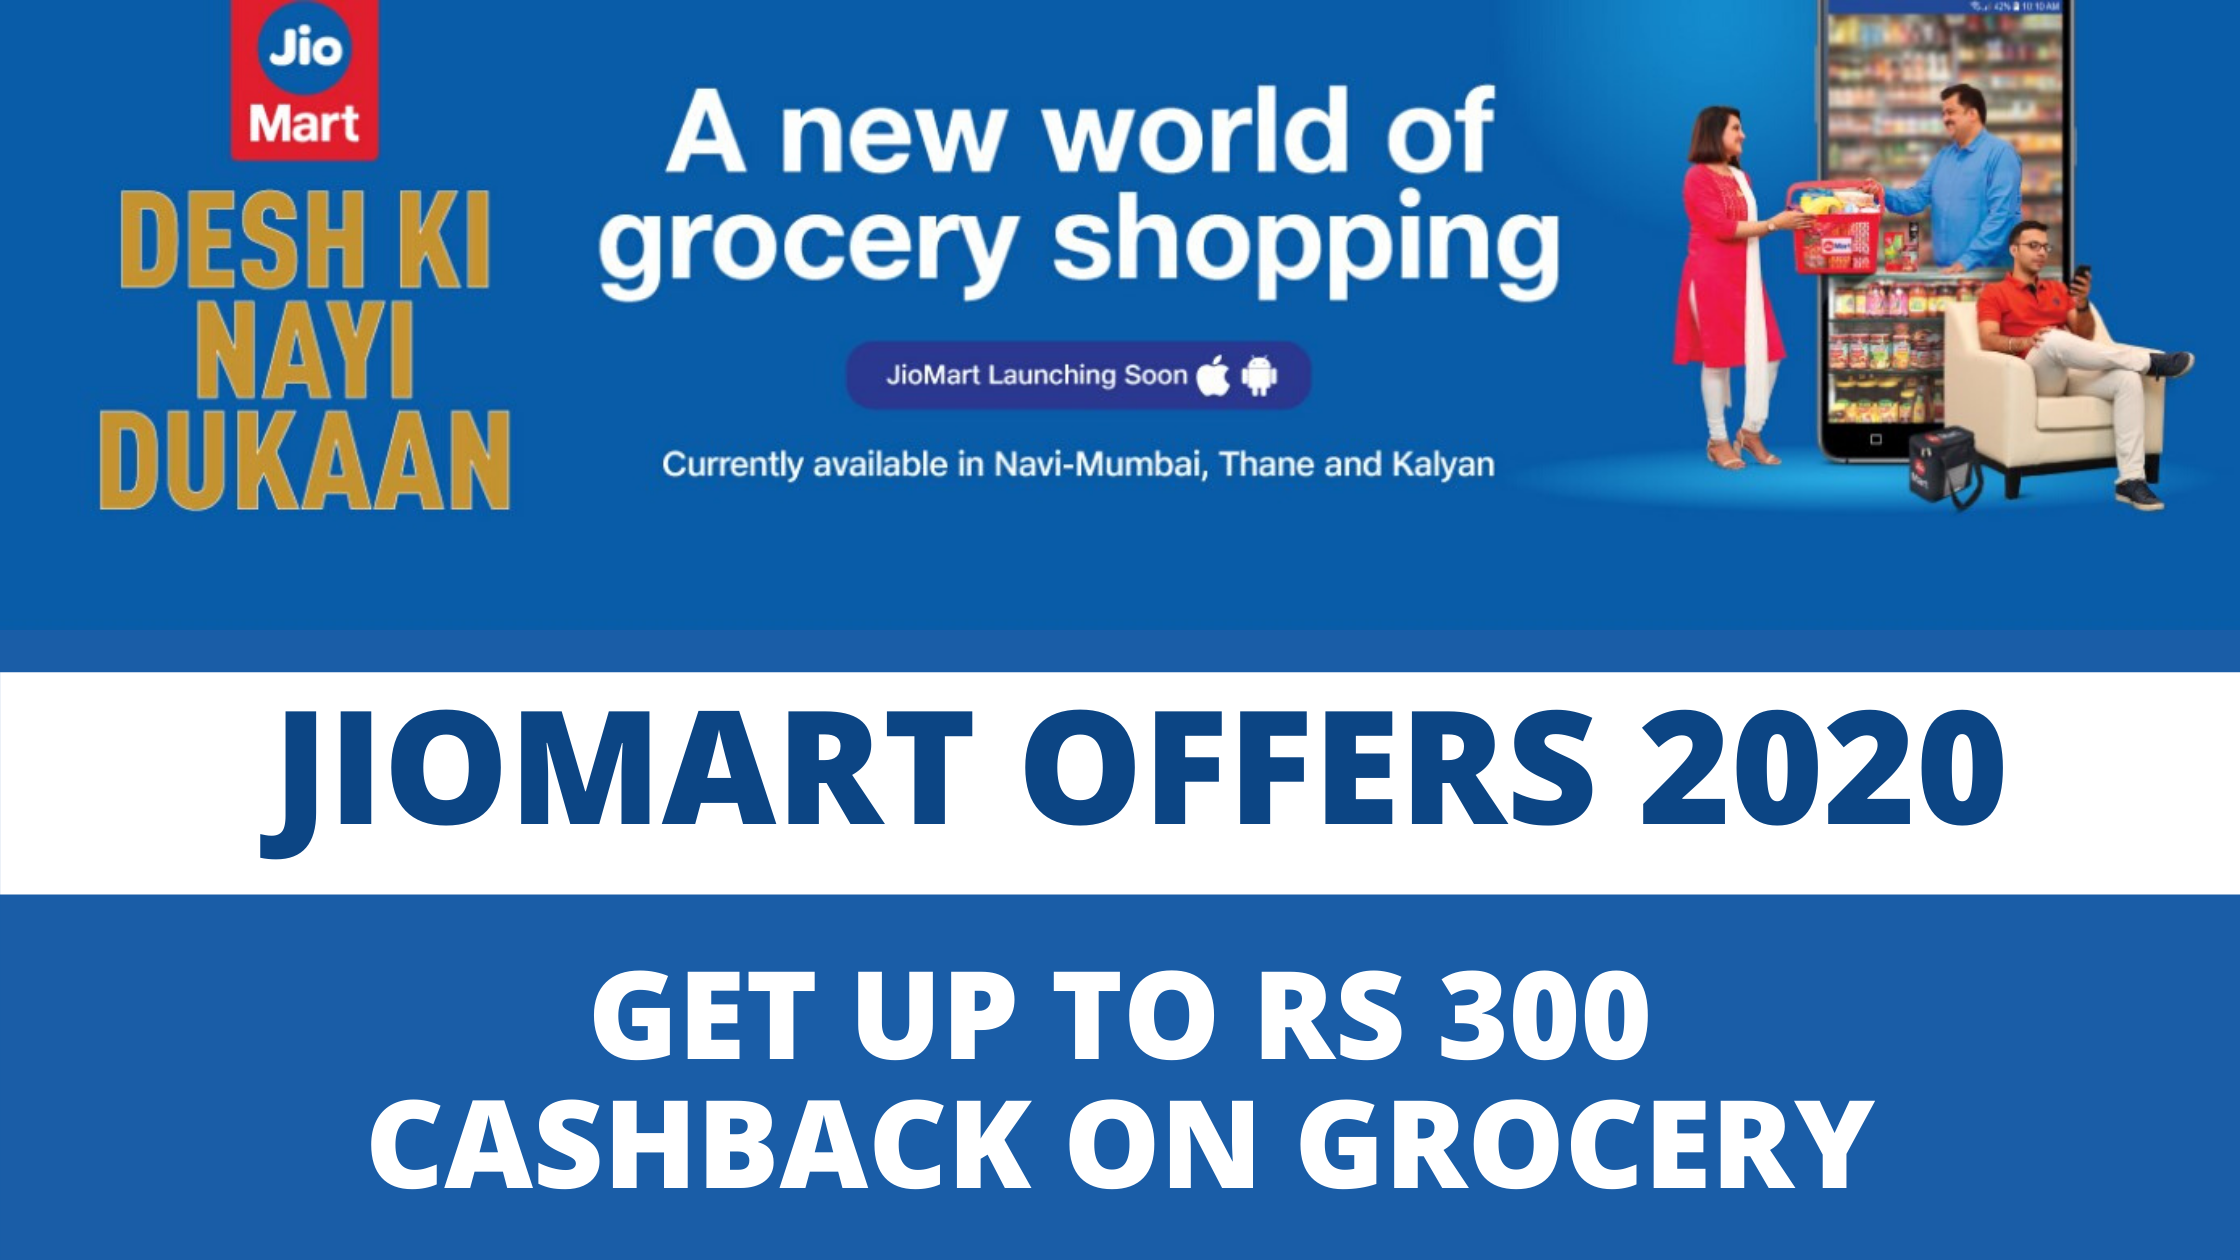 JioMart Offers 2020 - Get upto Rs 300 Cashback on Grocery